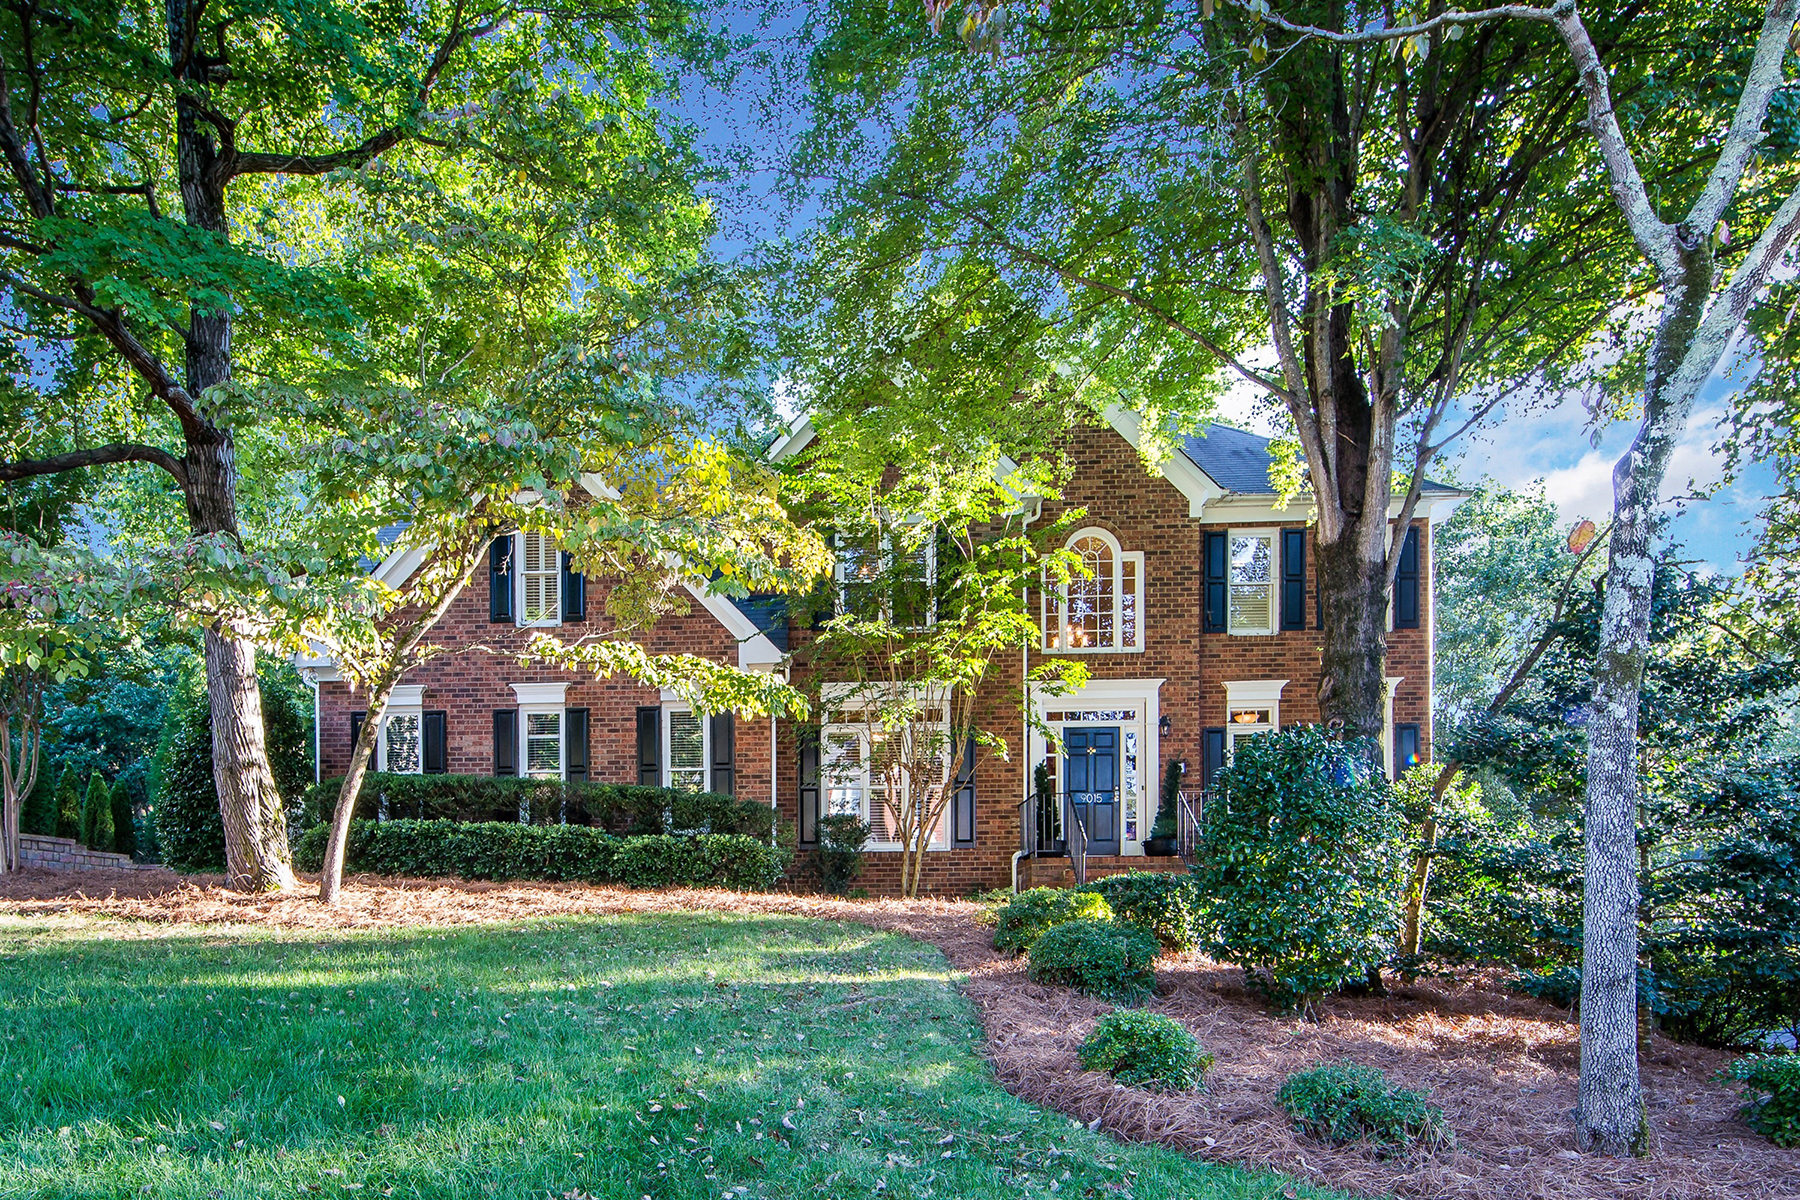 Single Family Home for Sale at WYNFIELD 9015 Oxfordshire Ct 14, Huntersville, North Carolina, 28078 United States